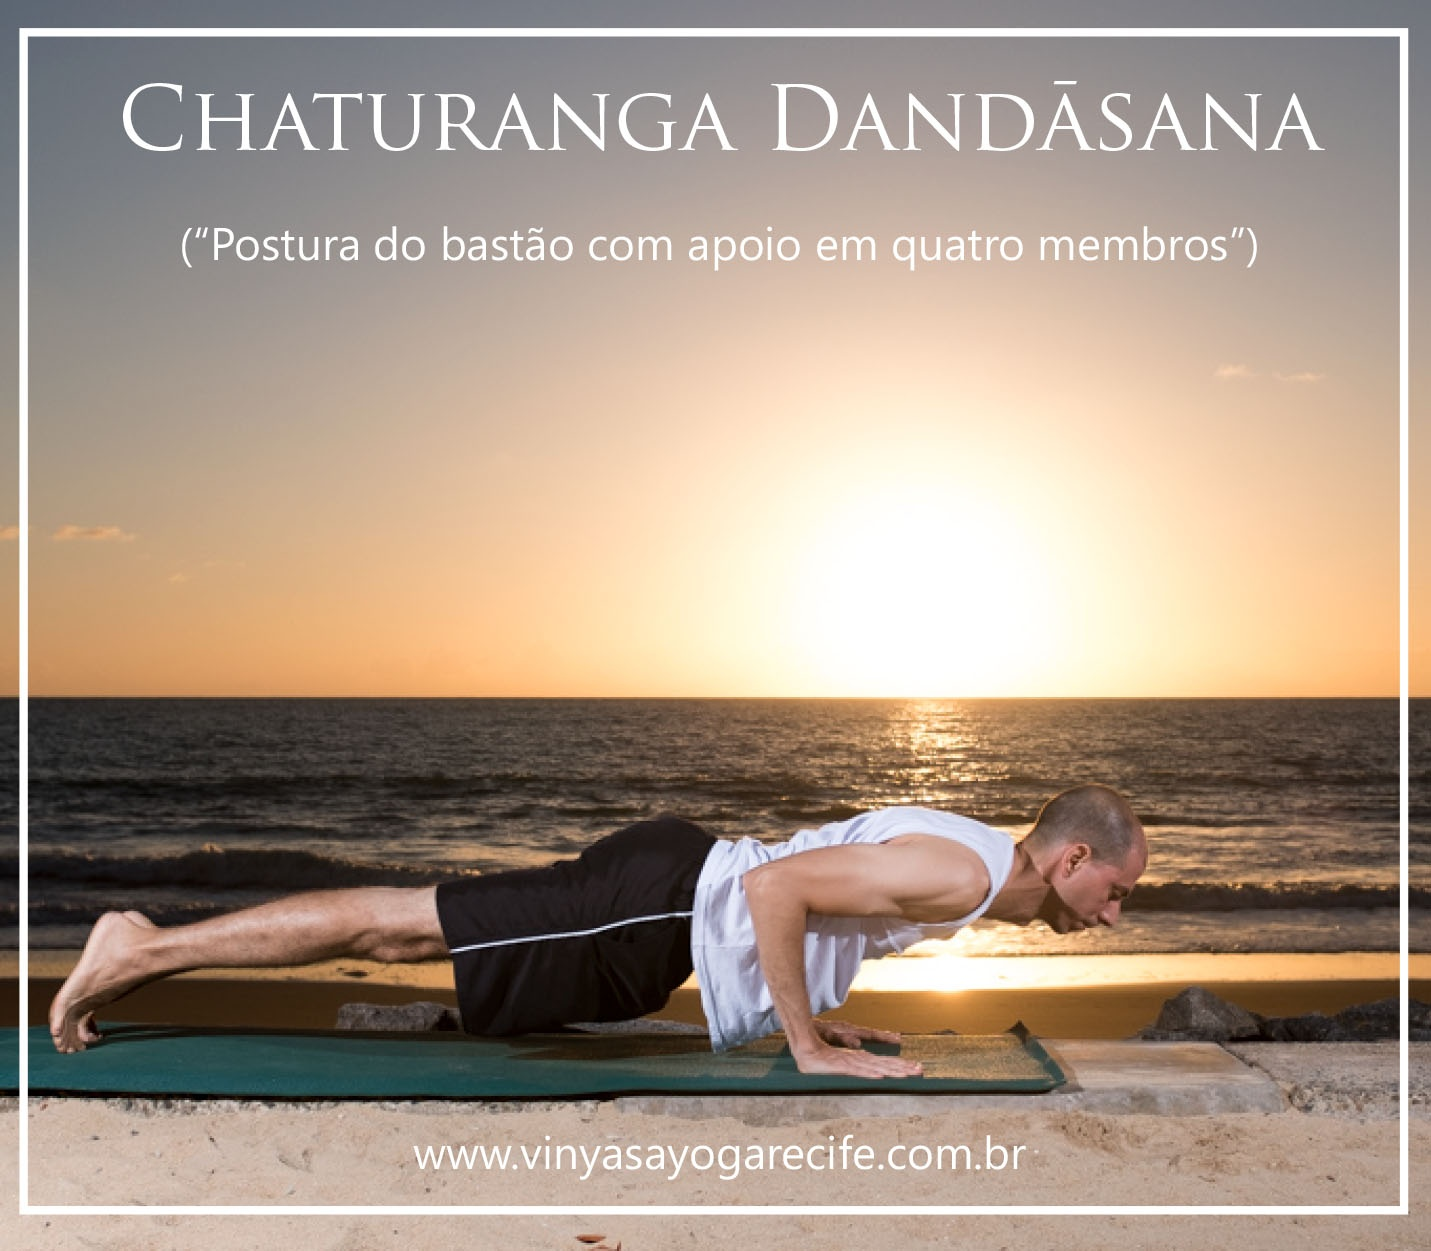 https://0201.nccdn.net/4_2/000/000/020/0be/chaturanga-dandasana-1431x1251.jpg